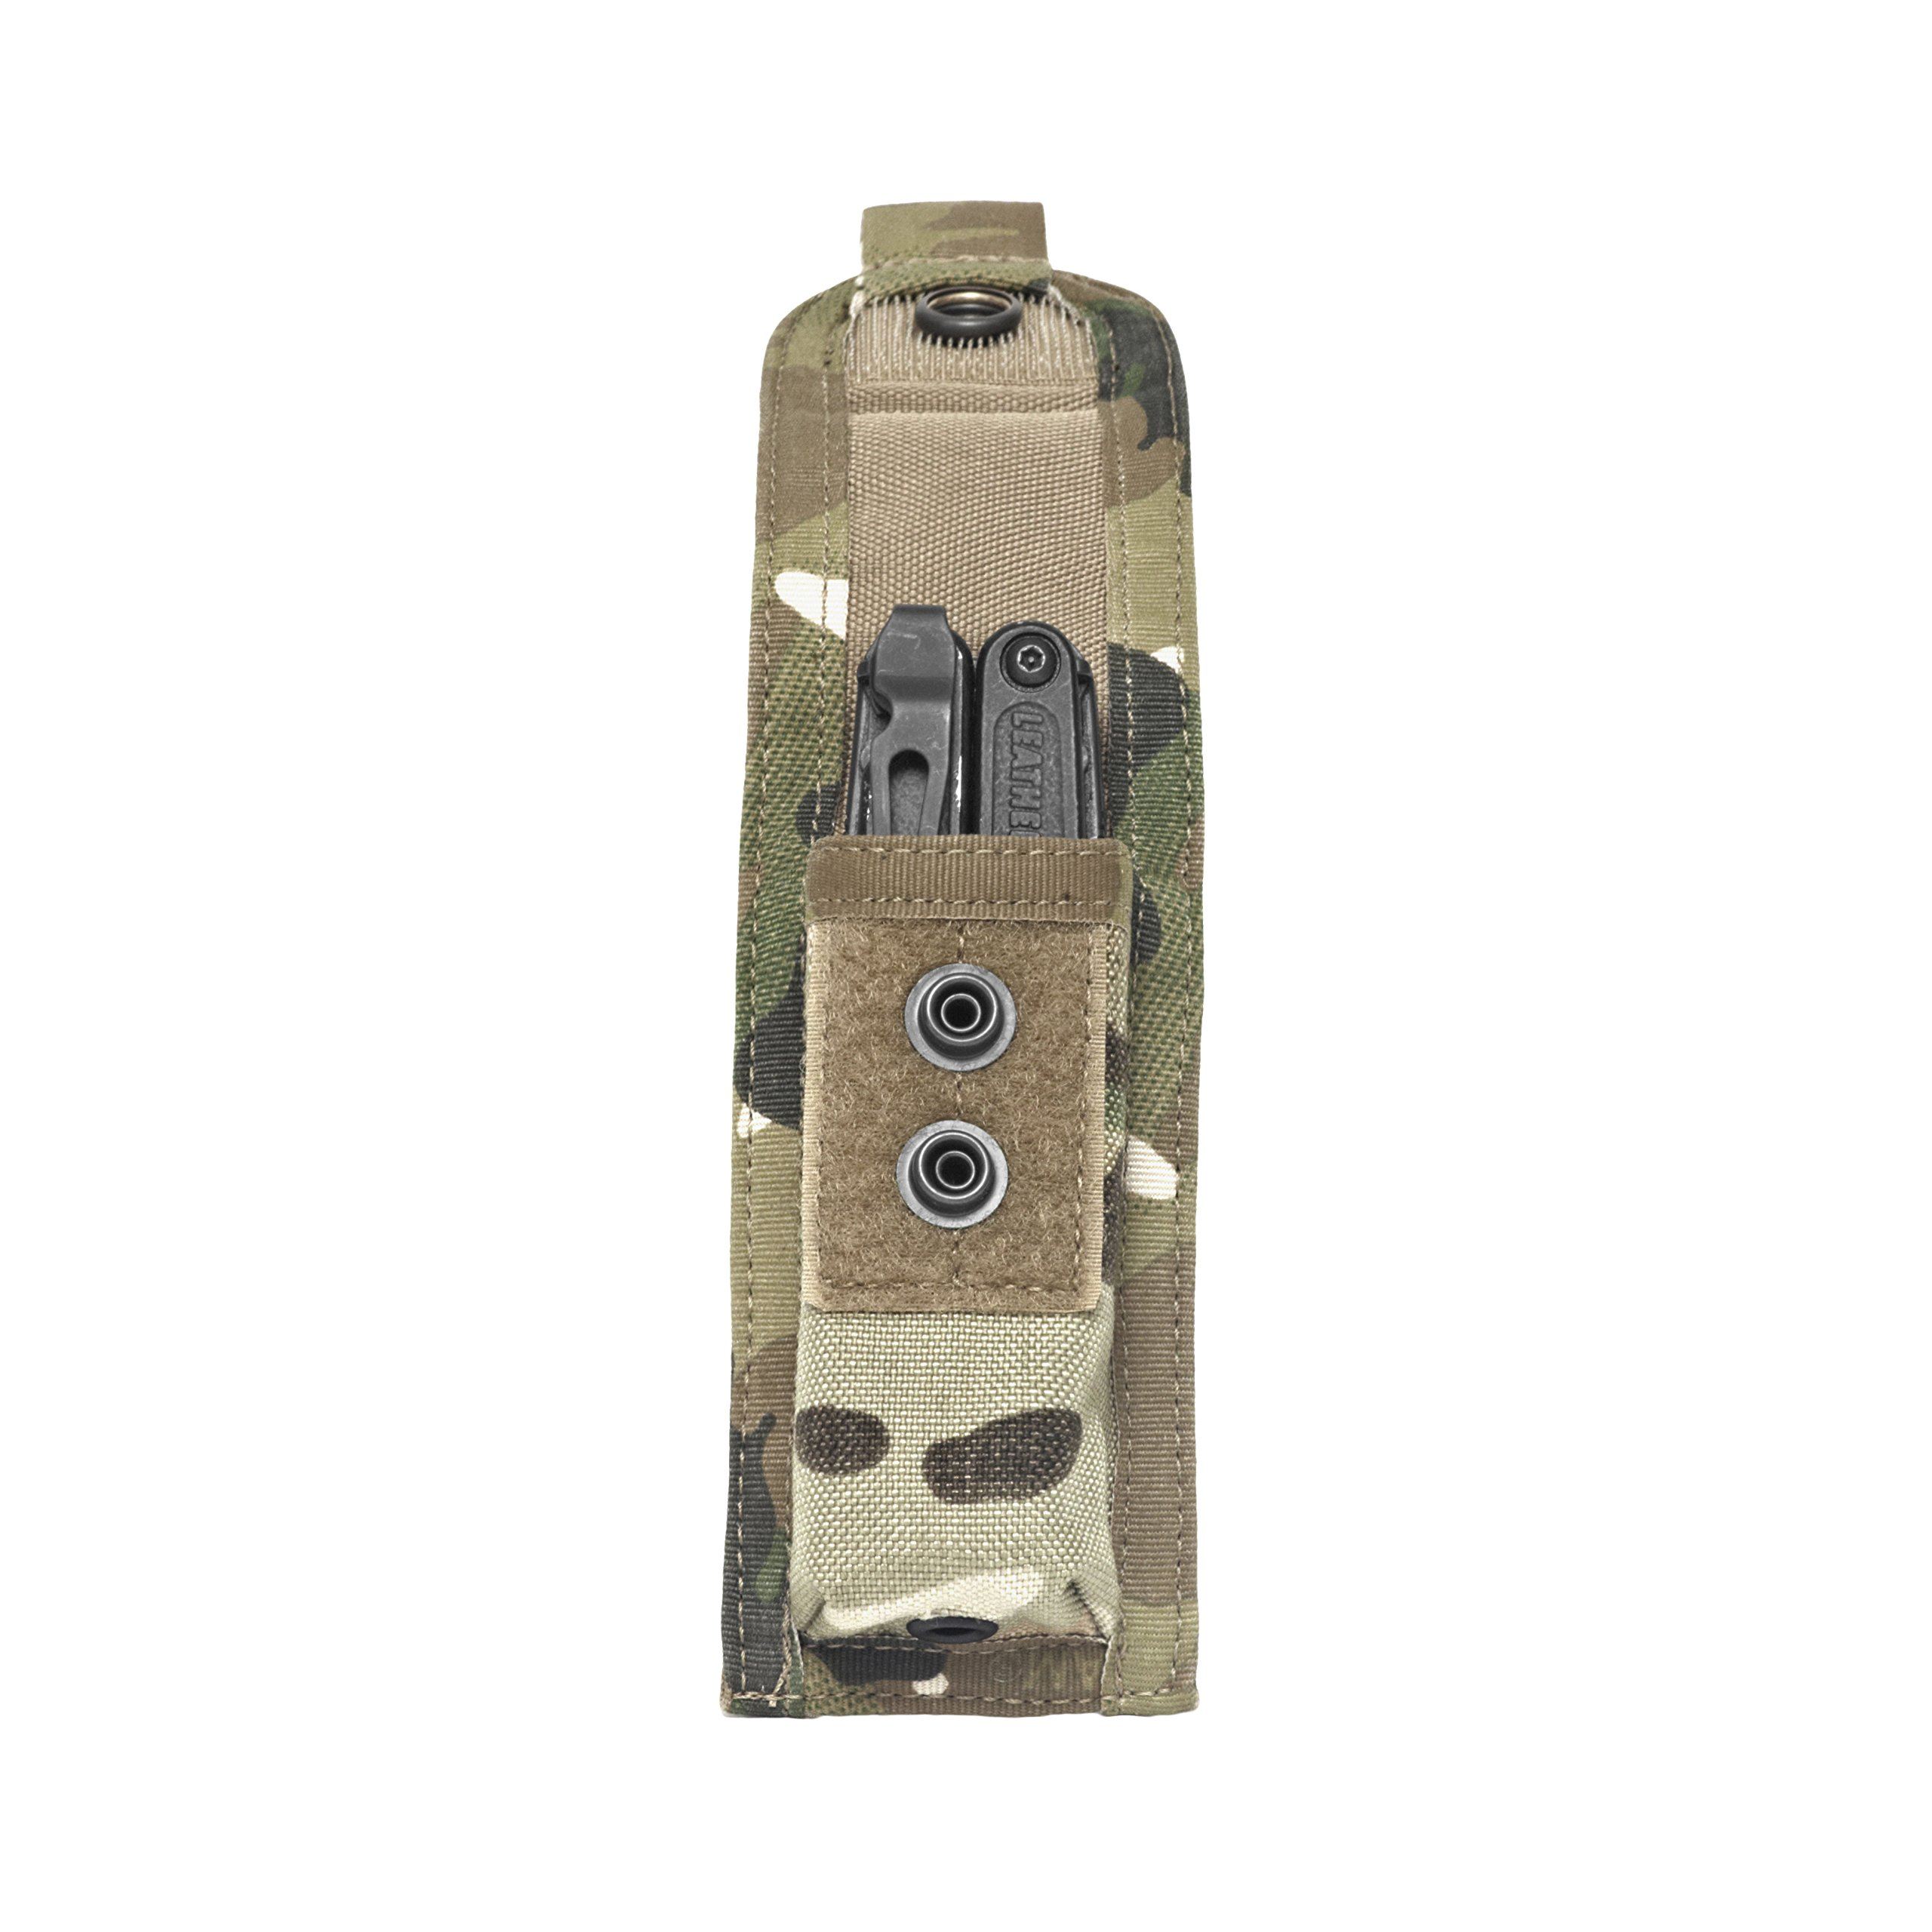 Warrior Assault Systems Utility/Multi Tool Pouch, MultiCam by Warrior Assault Systems (Image #2)